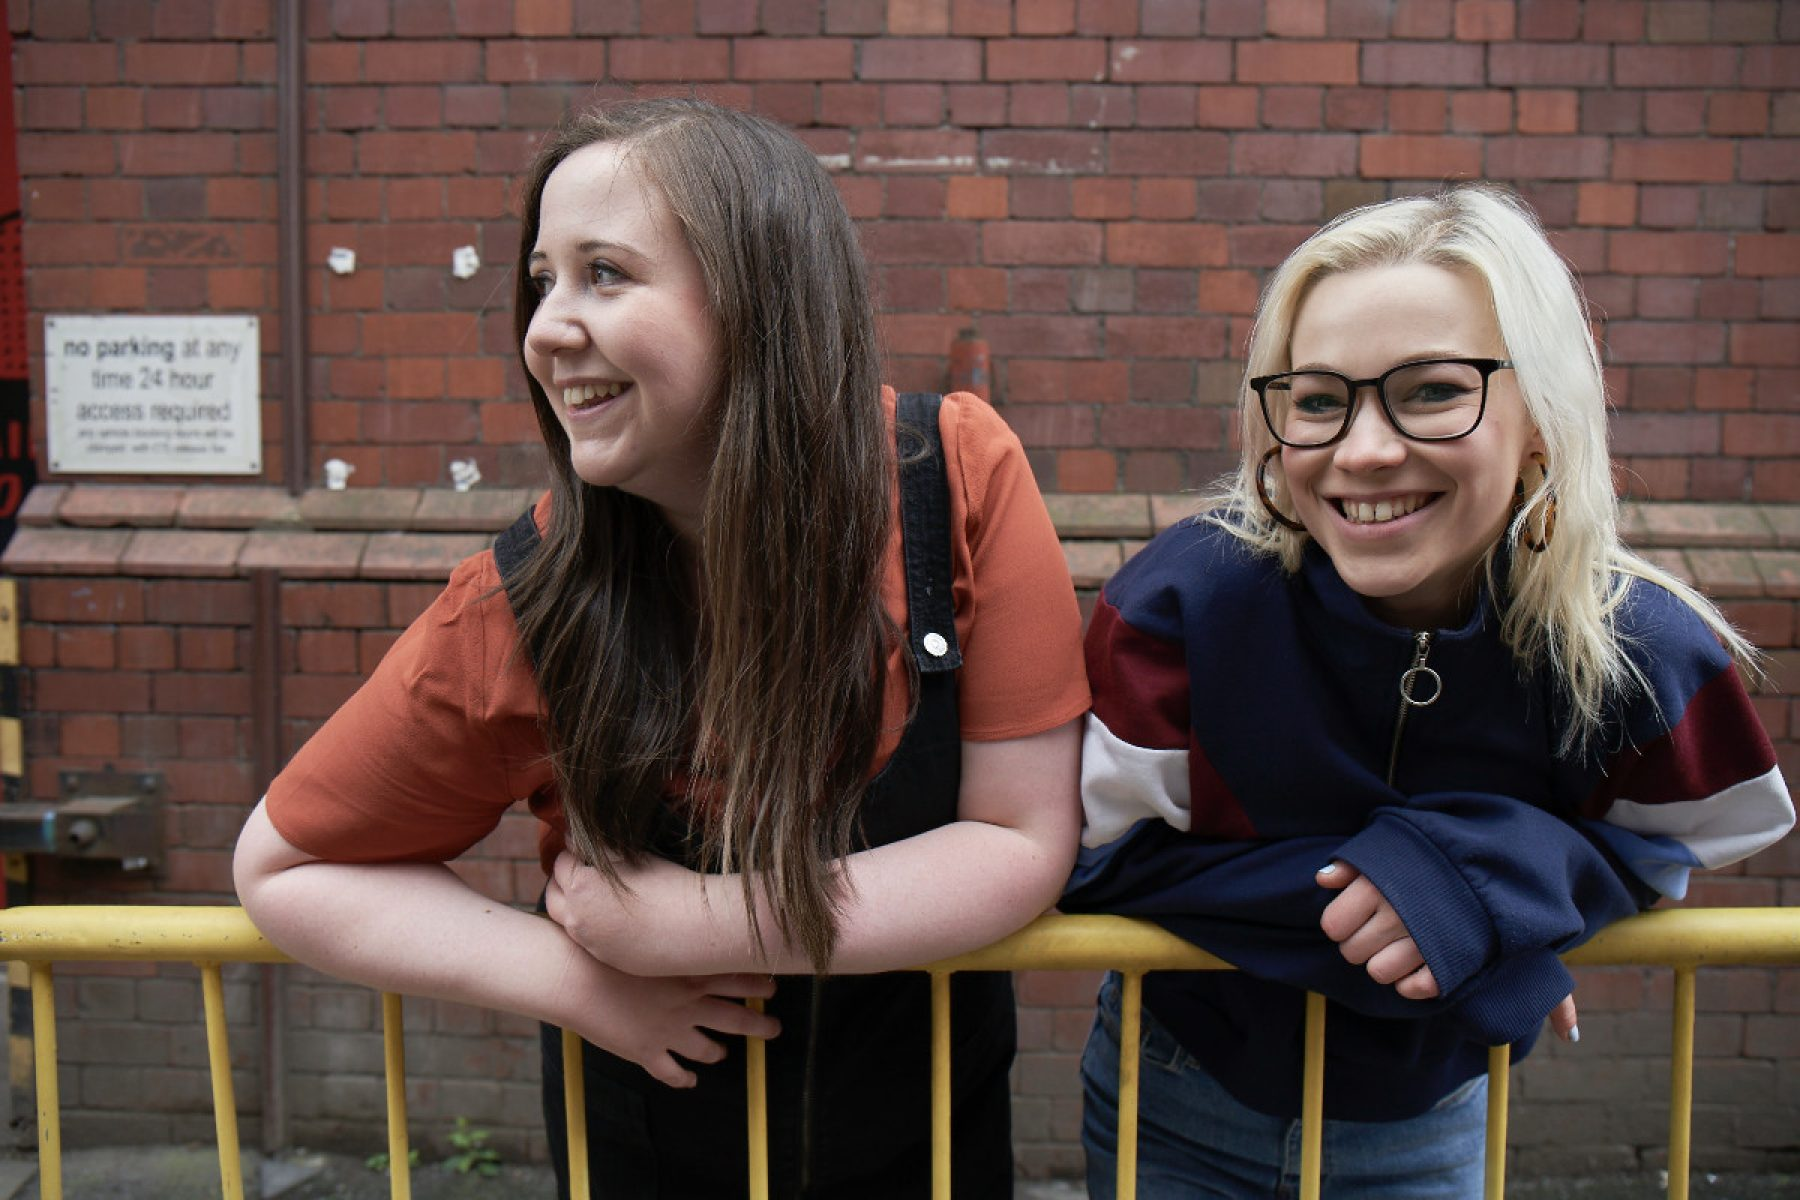 Image for giffgaff launches funding campaign for The Community Projects – and calls for nominees